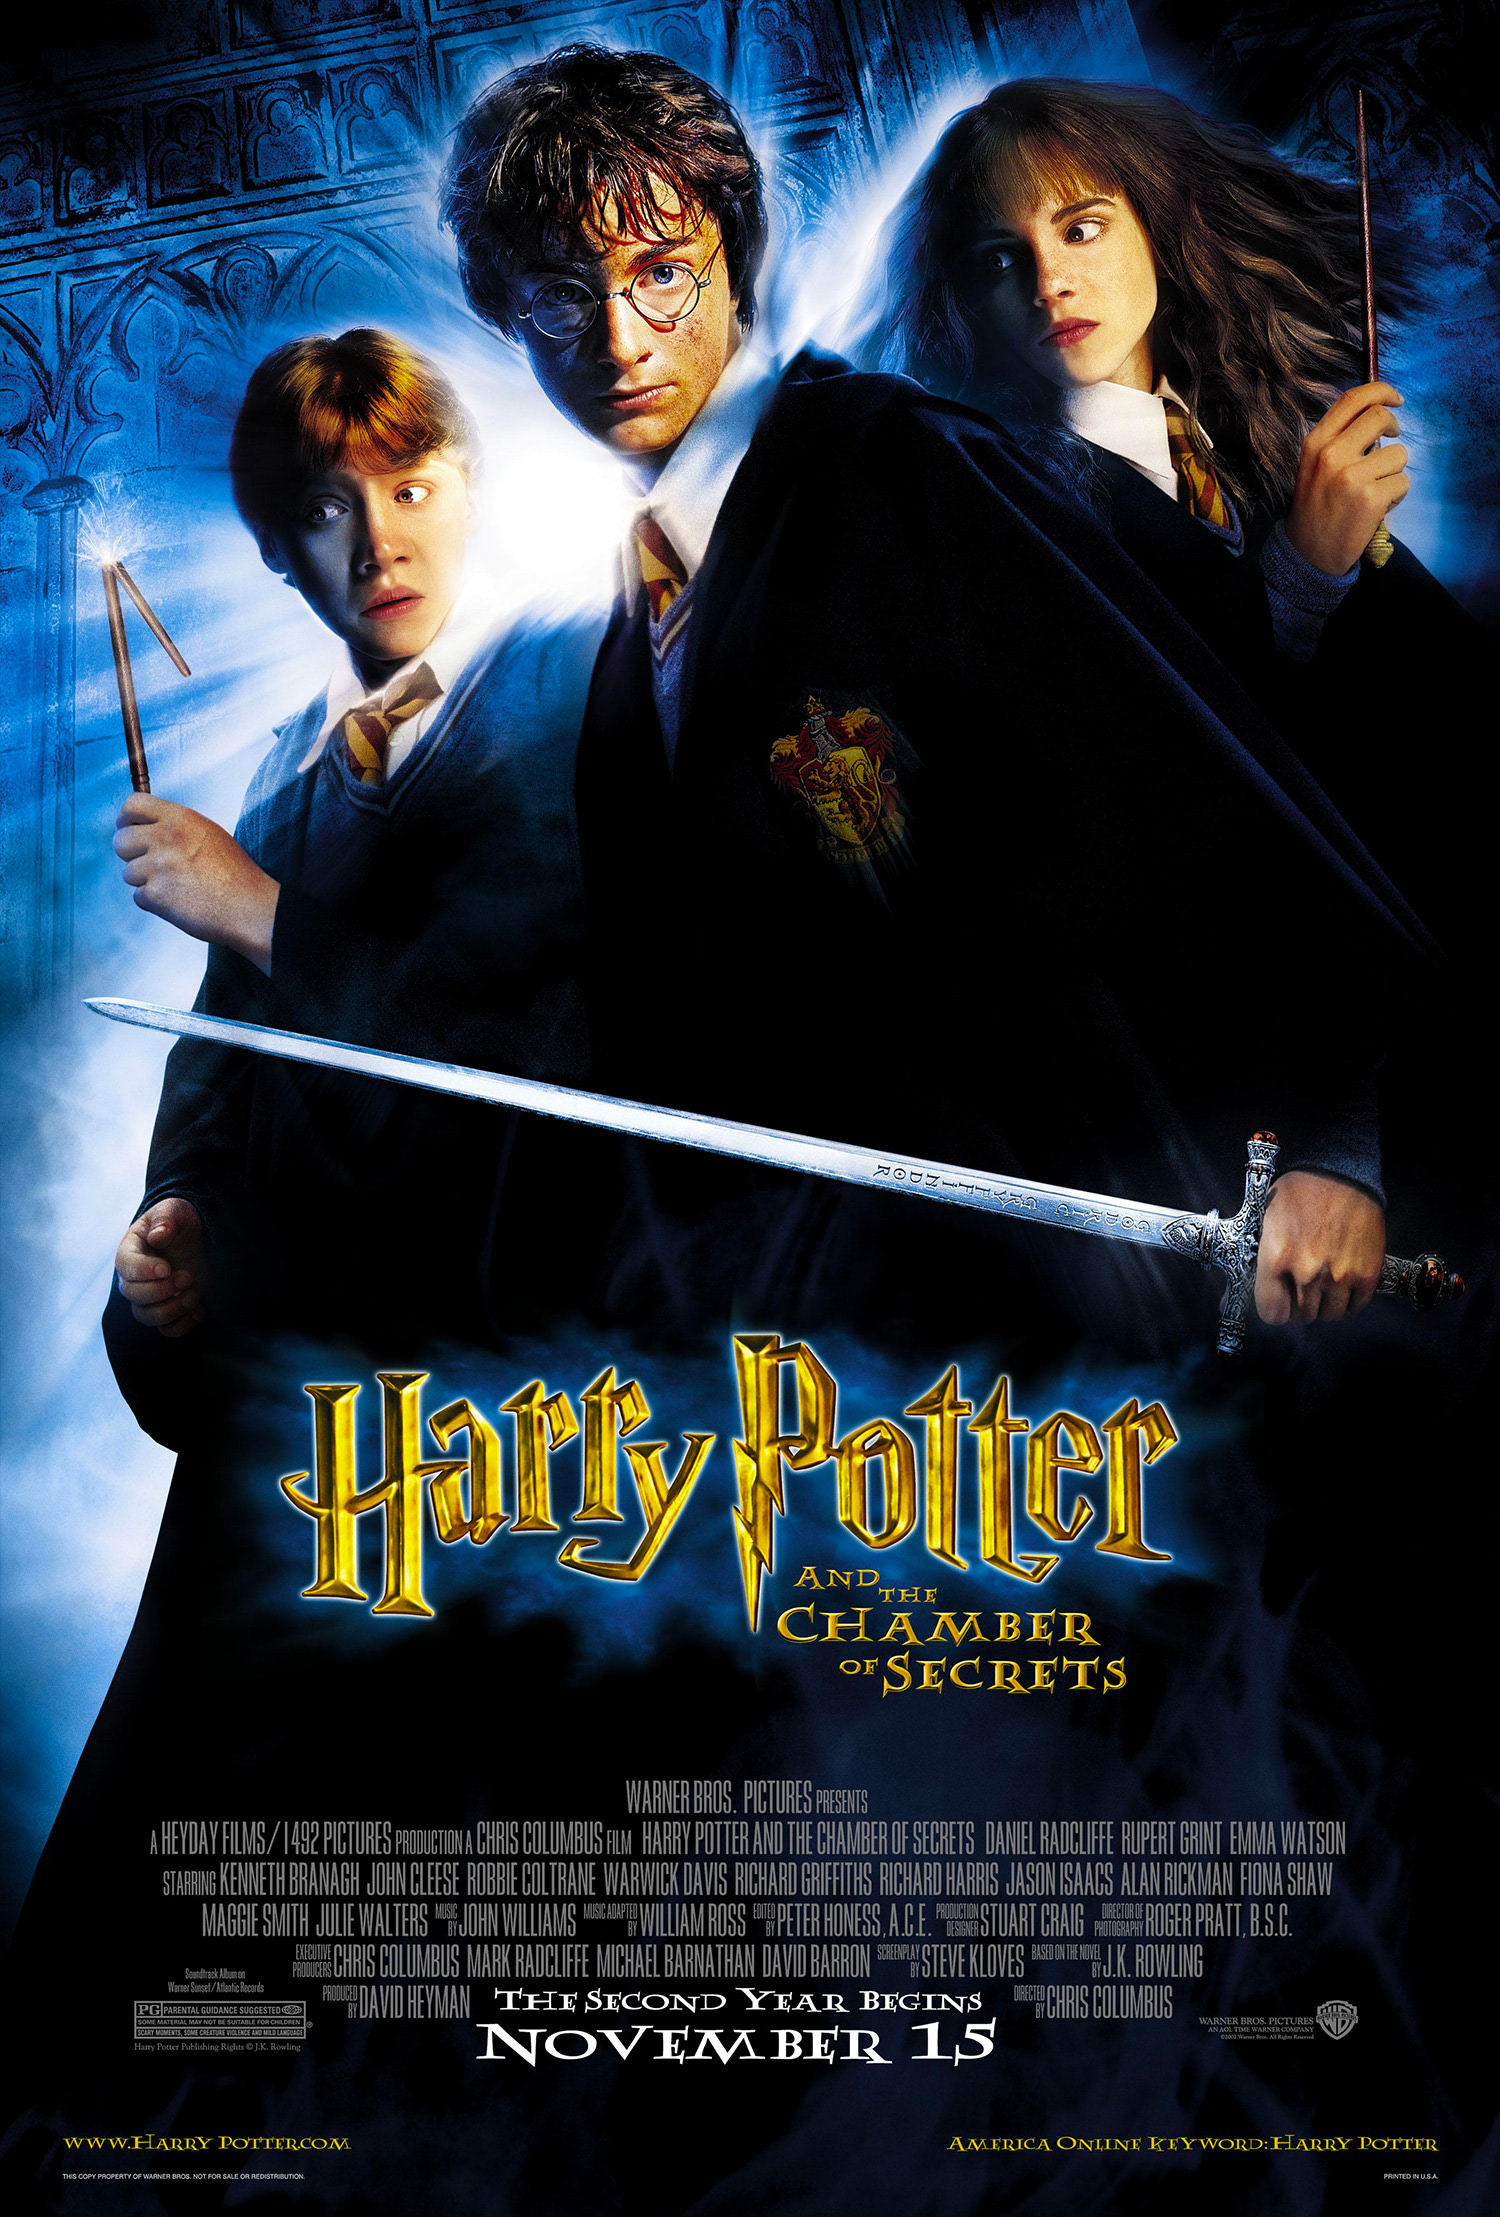 'Chamber of Secrets' theatrical poster #2